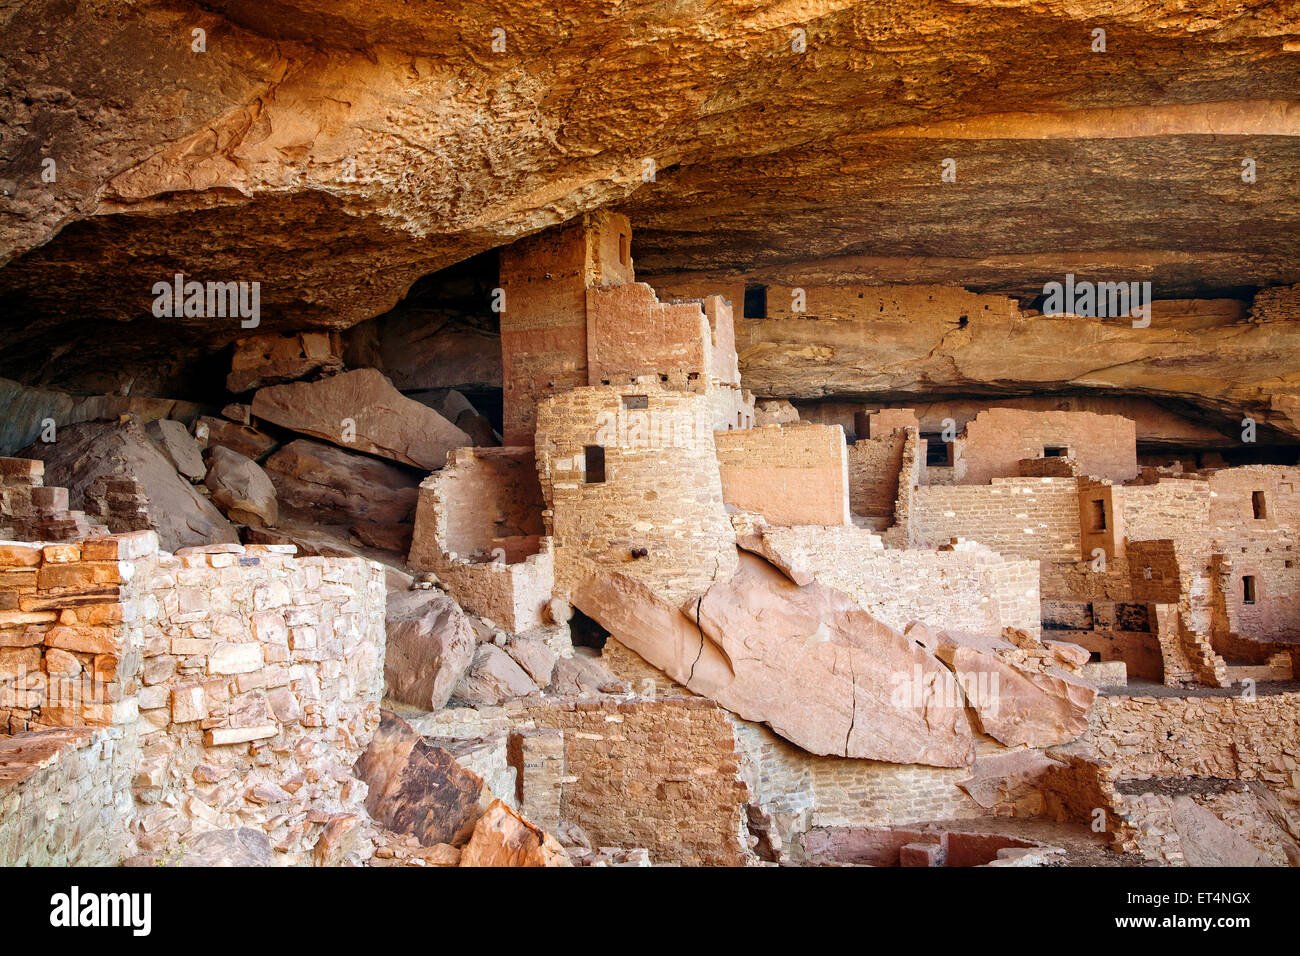 The Cliff Palace ruins in Mesa Verde National Park, Colorado. - Stock Image